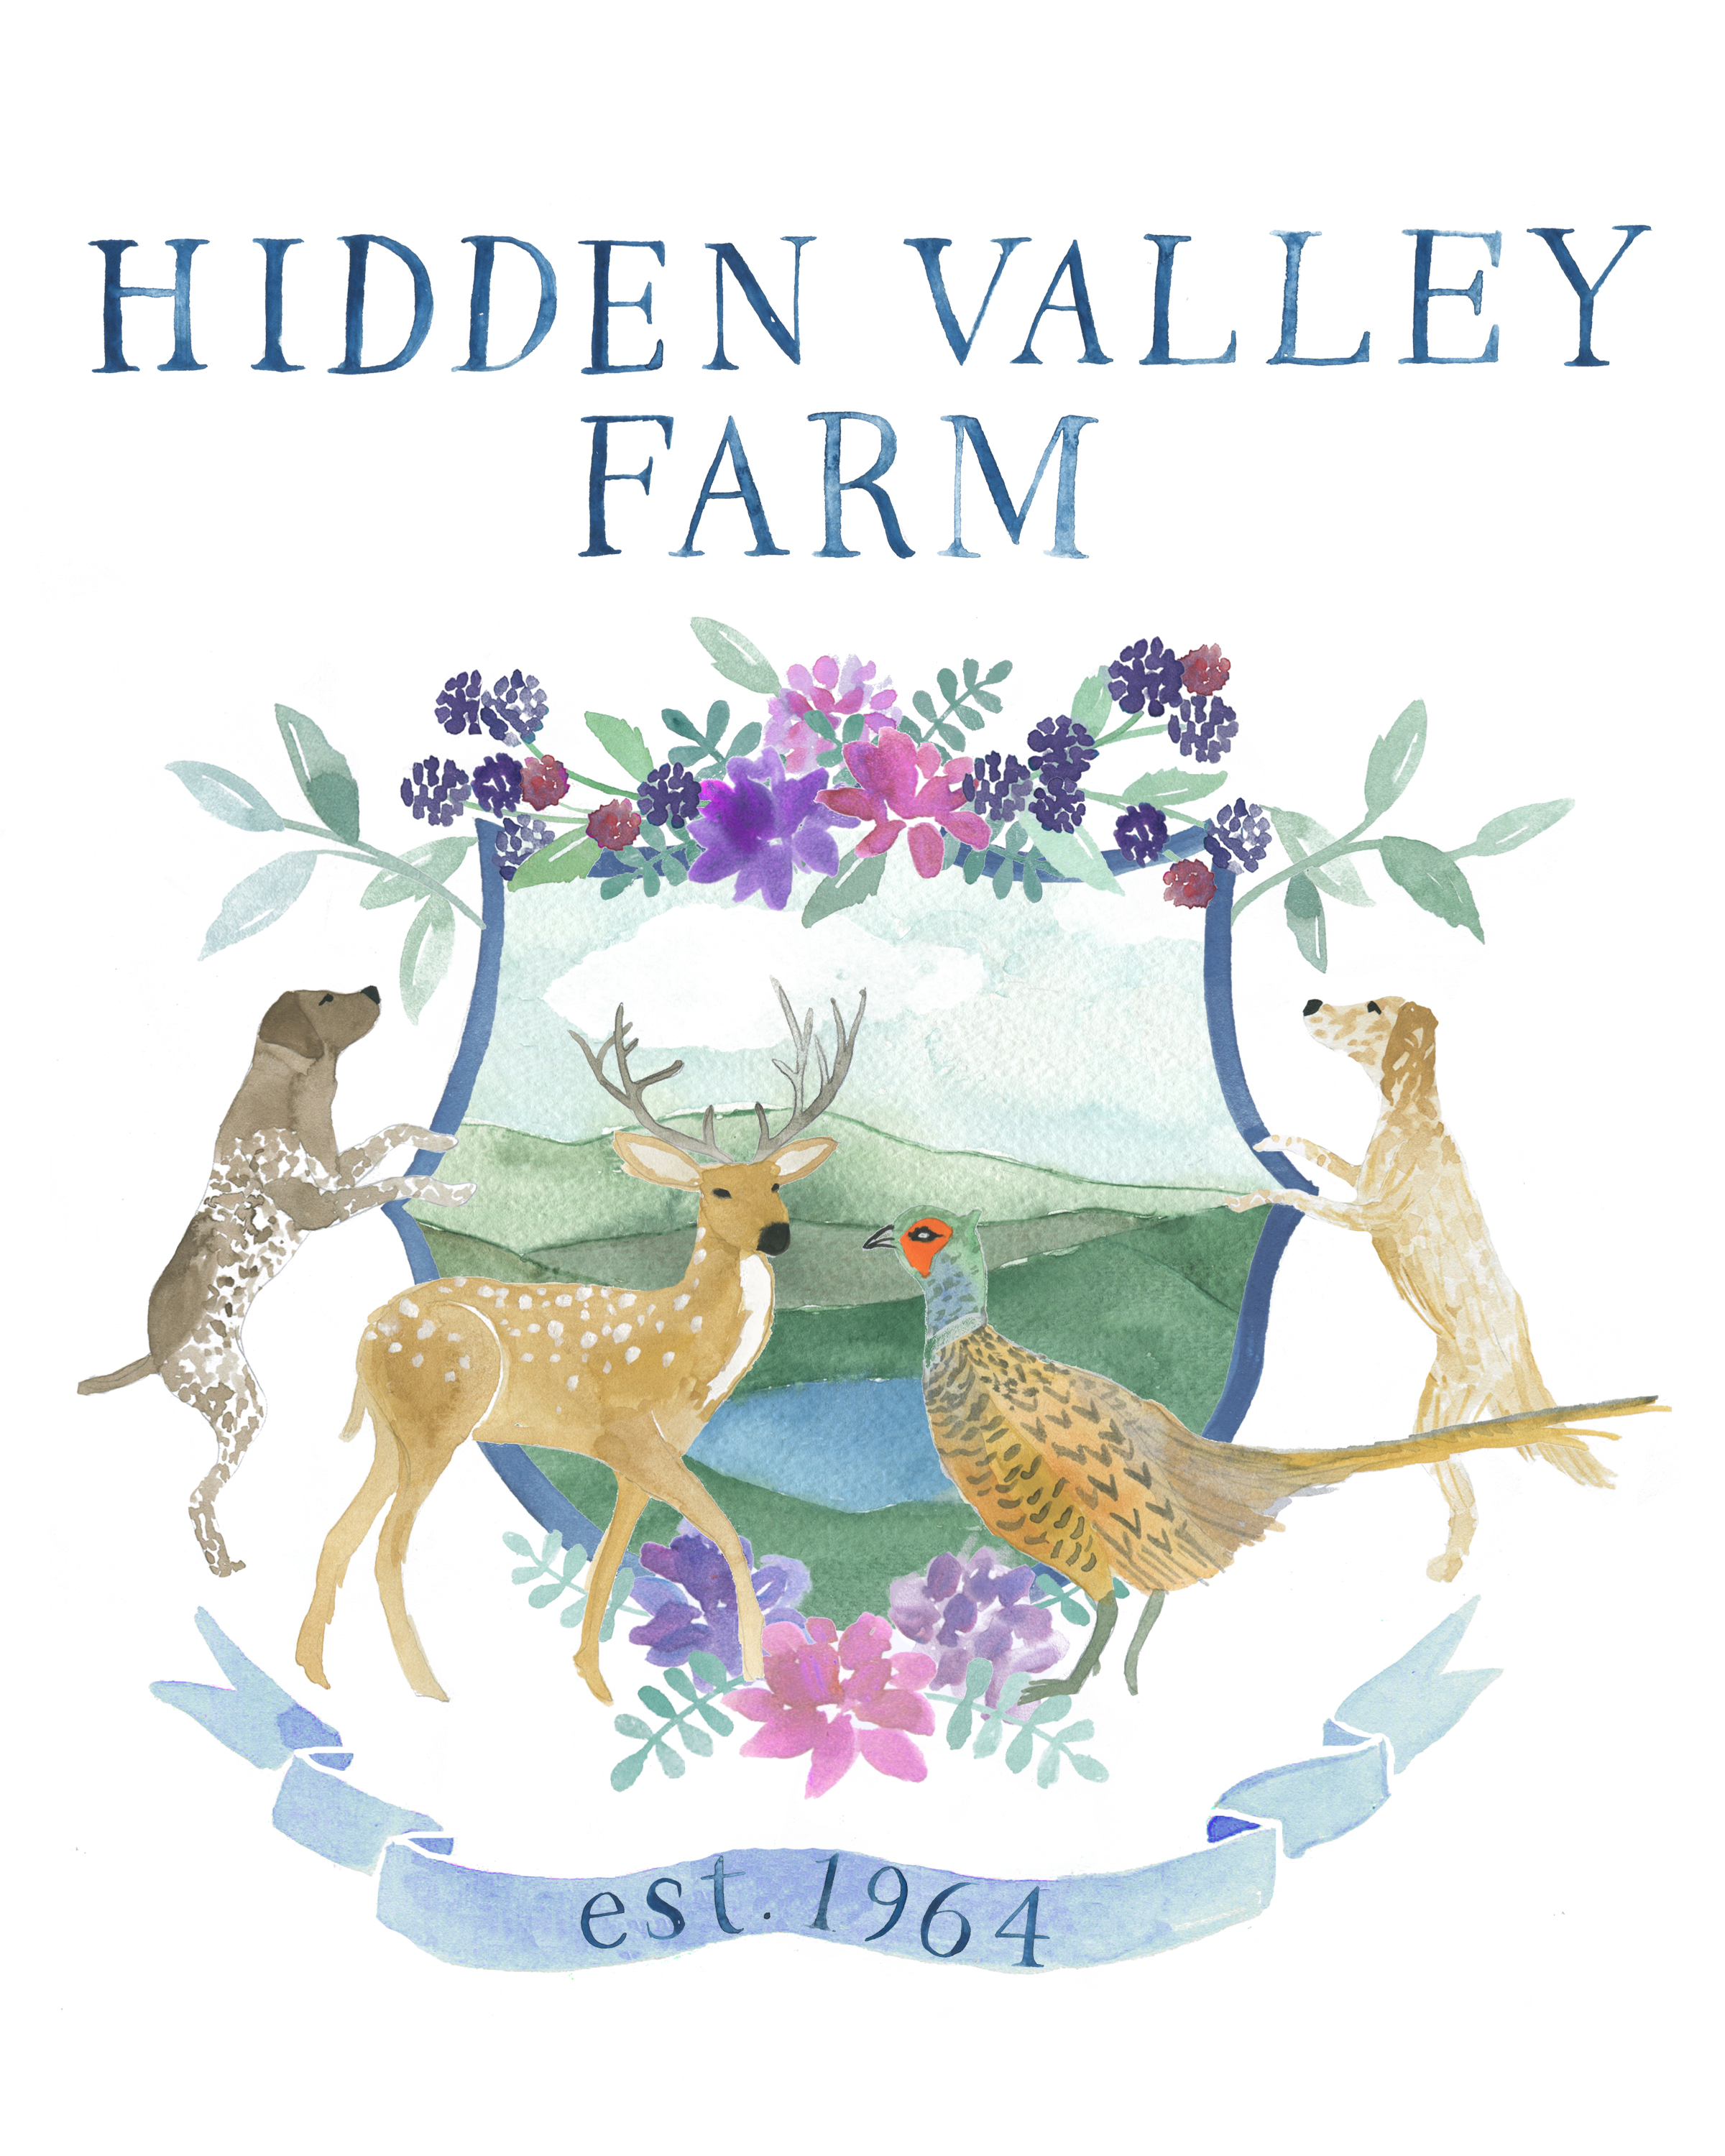 hiddenvalleyfarm.jpg